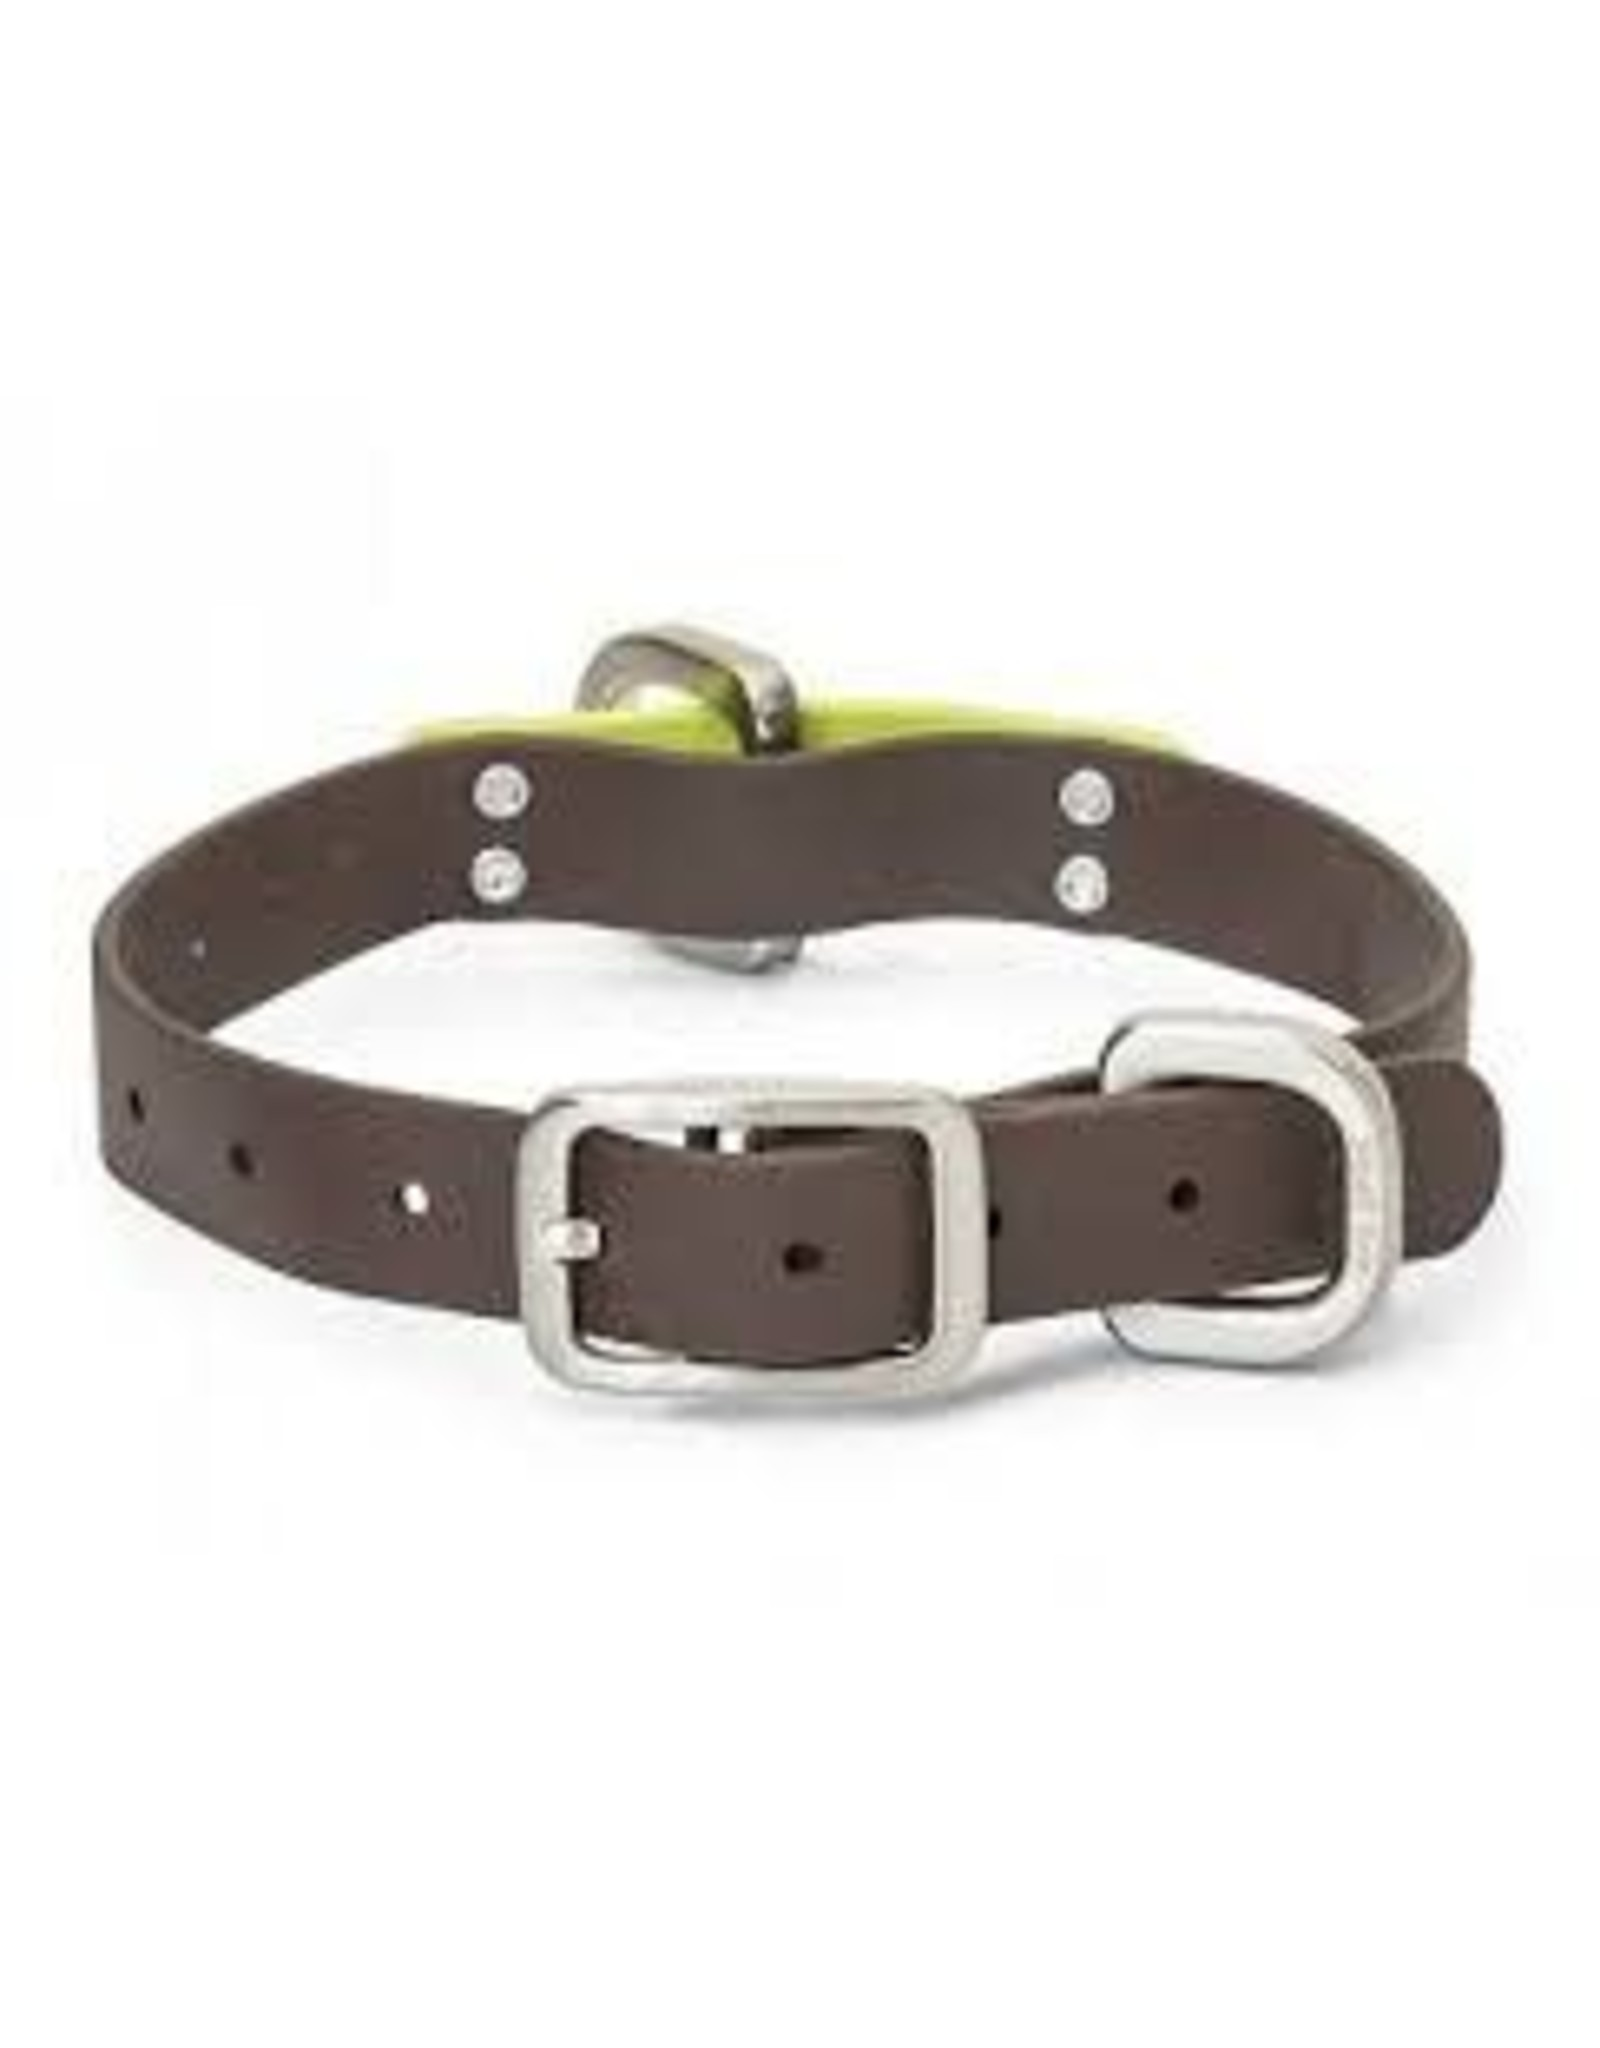 WEST PAW WEST PAW JAUNTS COLLAR MED-BROWN